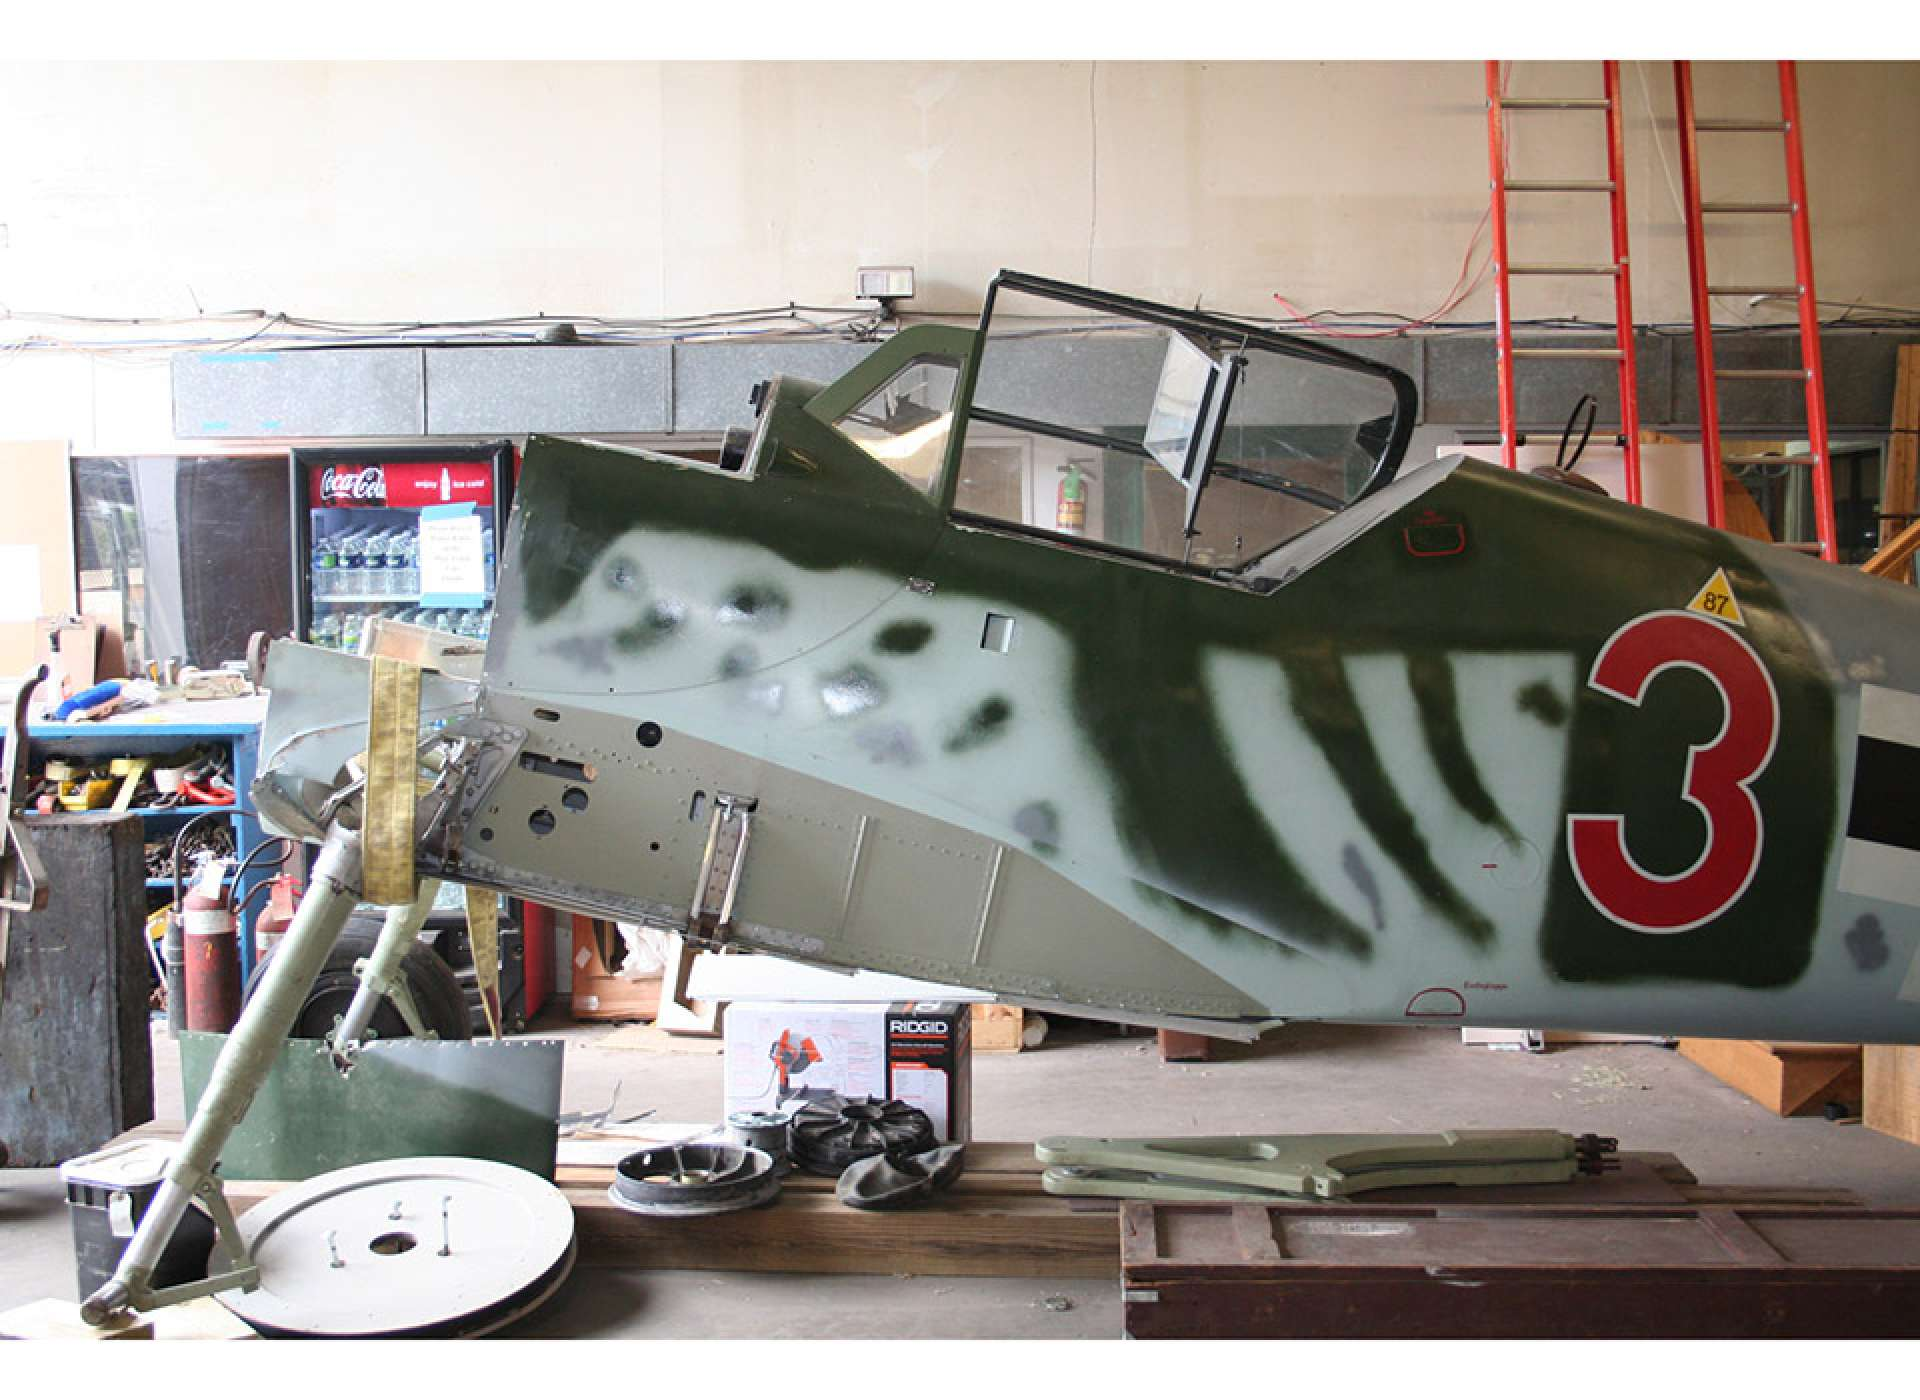 Bf 109 receives attention before moving to the Campaigns of Courage Pavilion.